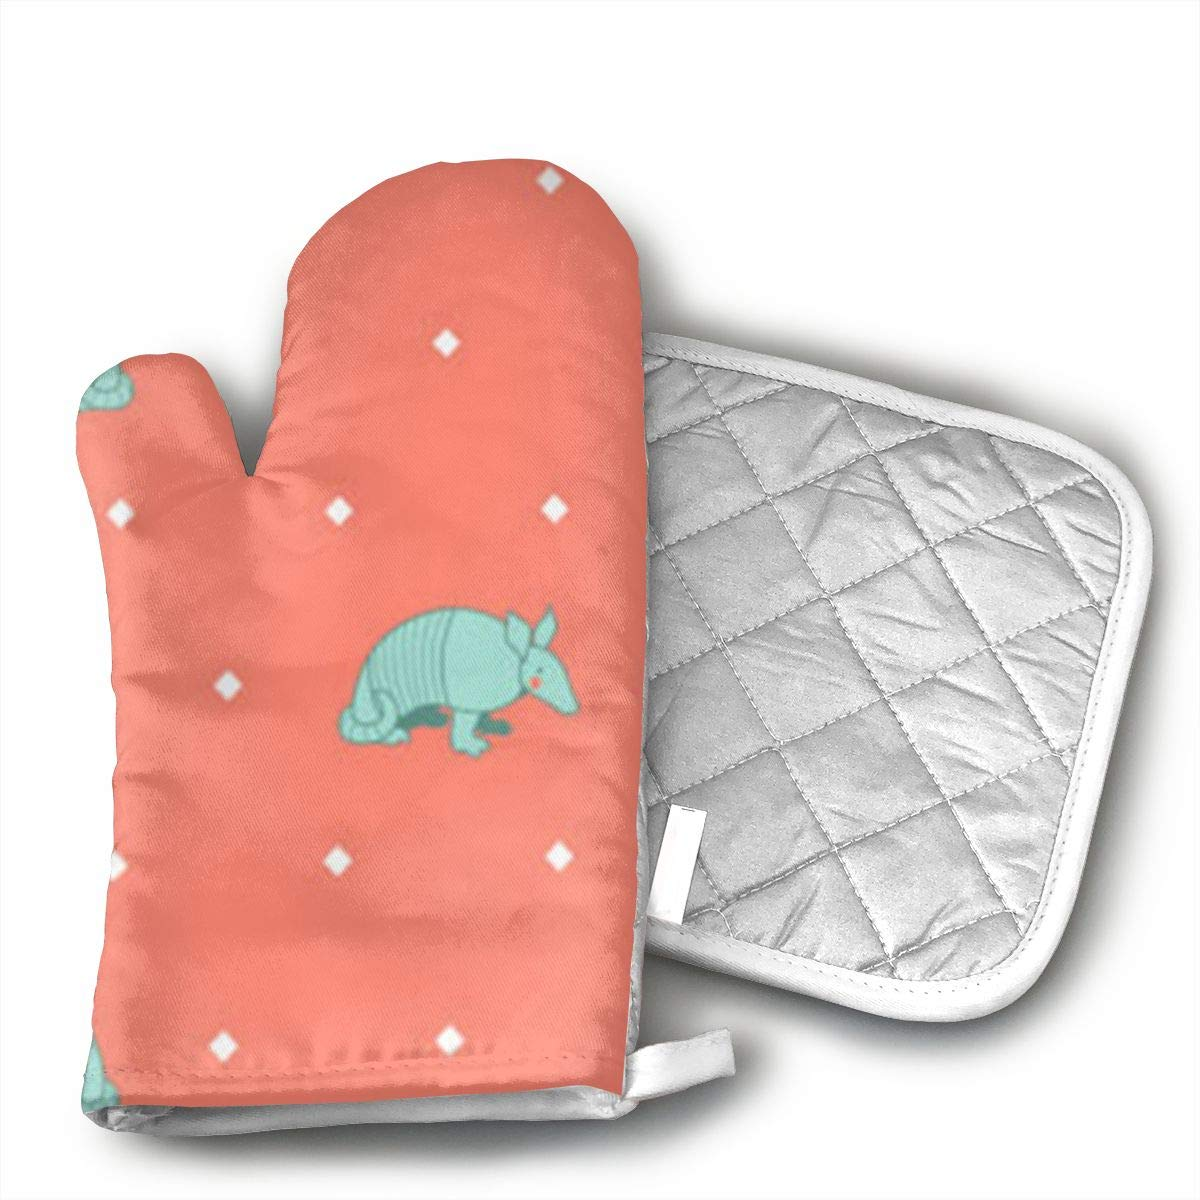 HGUIDHG Southwestern Armadillo On Yellow Oven Mitts+Insulated Square Mat,Heat Resistant Kitchen Gloves Soft Insulated Deep Pockets, Non-Slip Handles